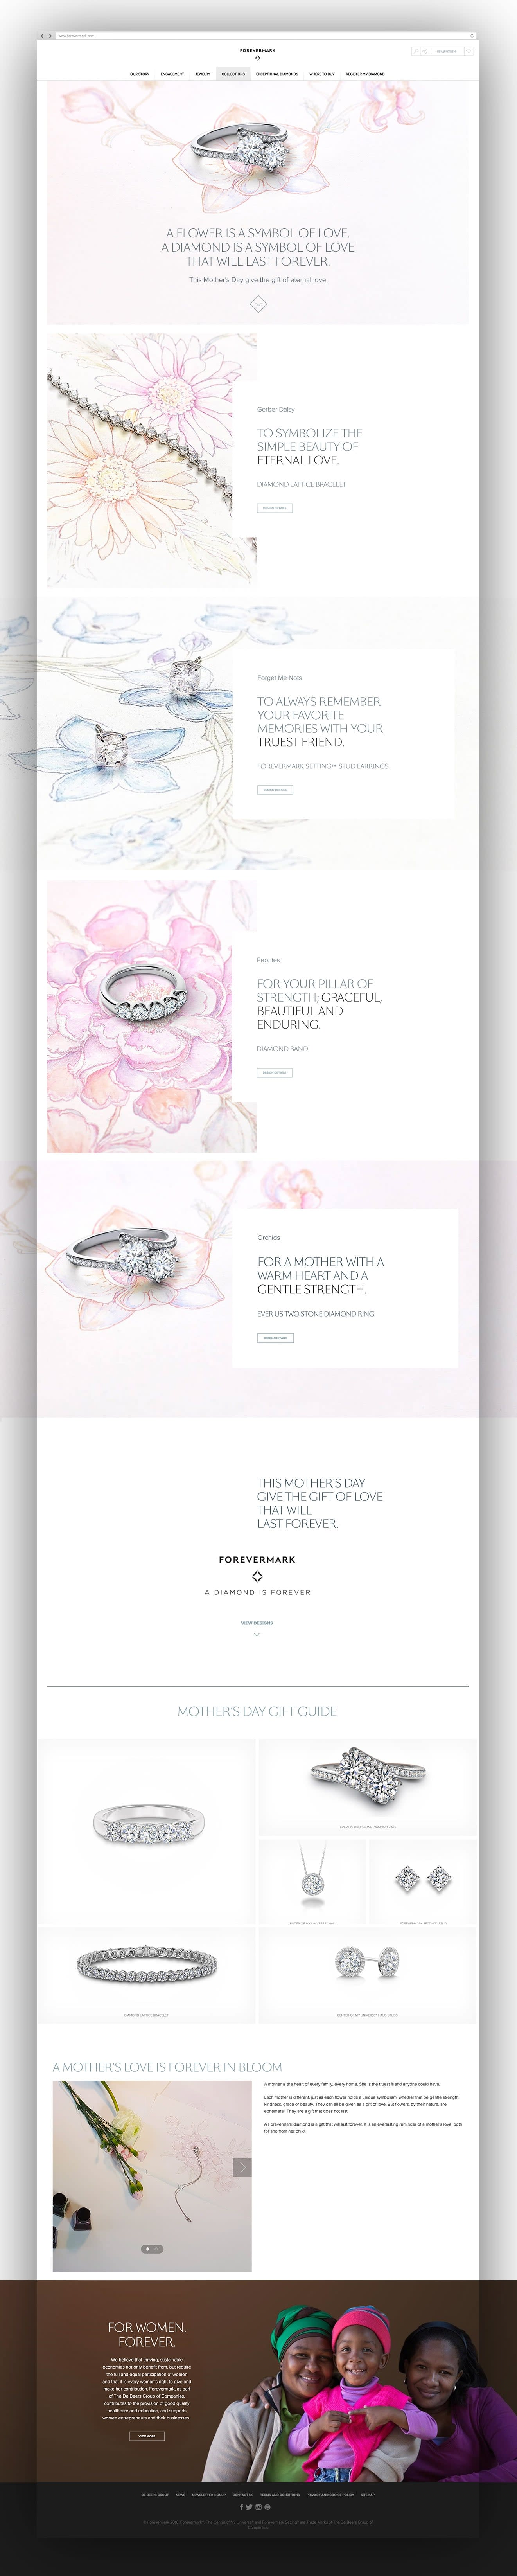 Forevermark - web, social & campaign copy